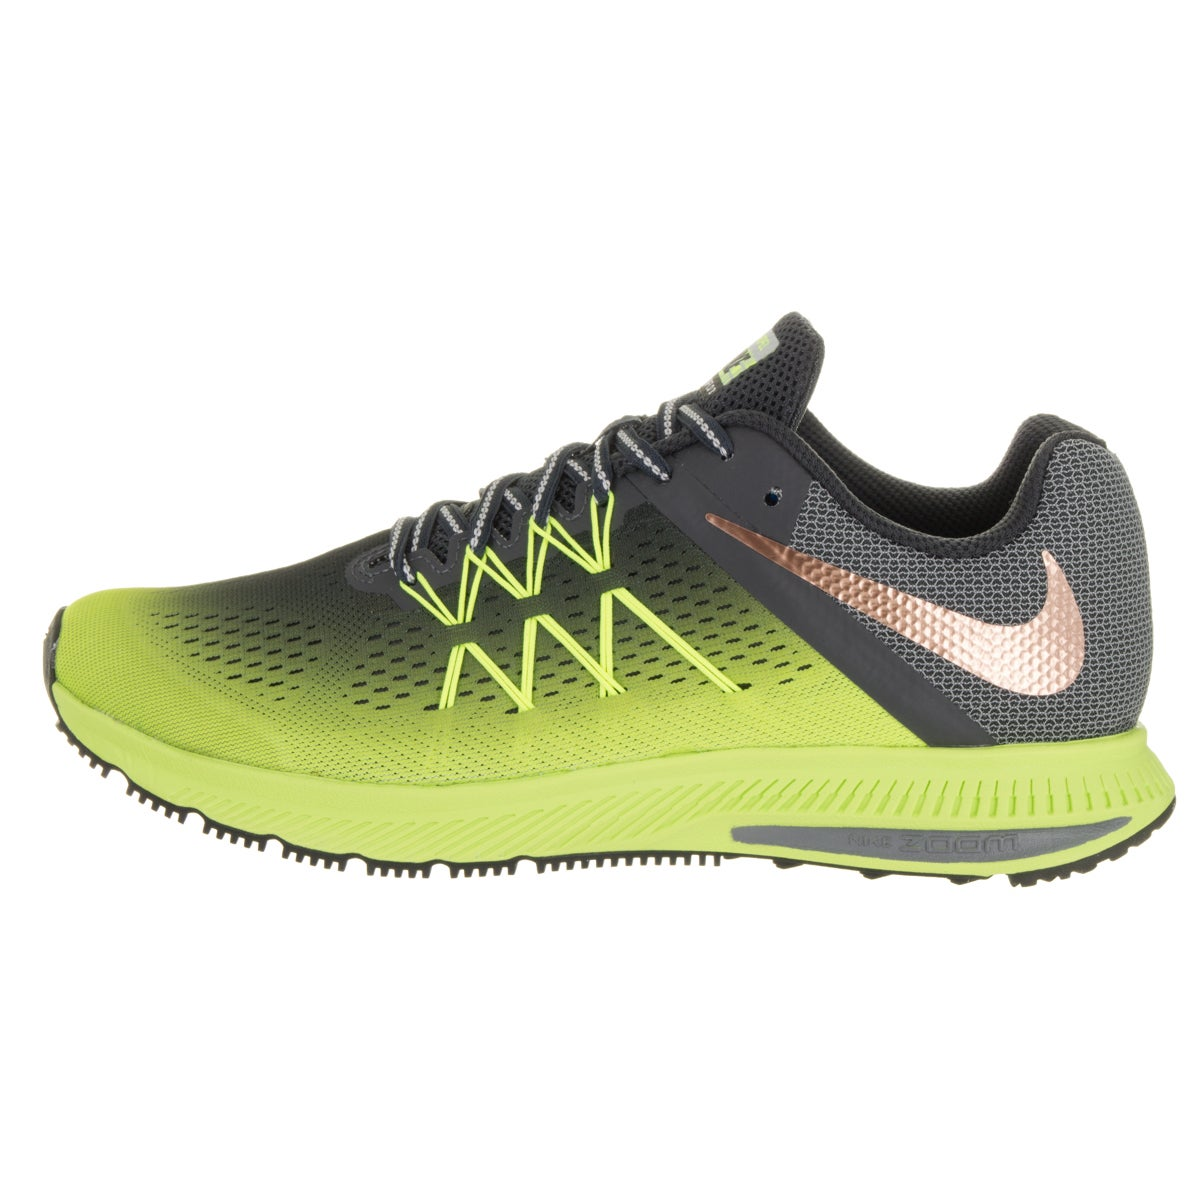 Shop Nike Men s Zoom Winflo 3 Shield Green Faux Leather Running Shoe - Free  Shipping Today - Overstock - 13620365 35261d3eb037